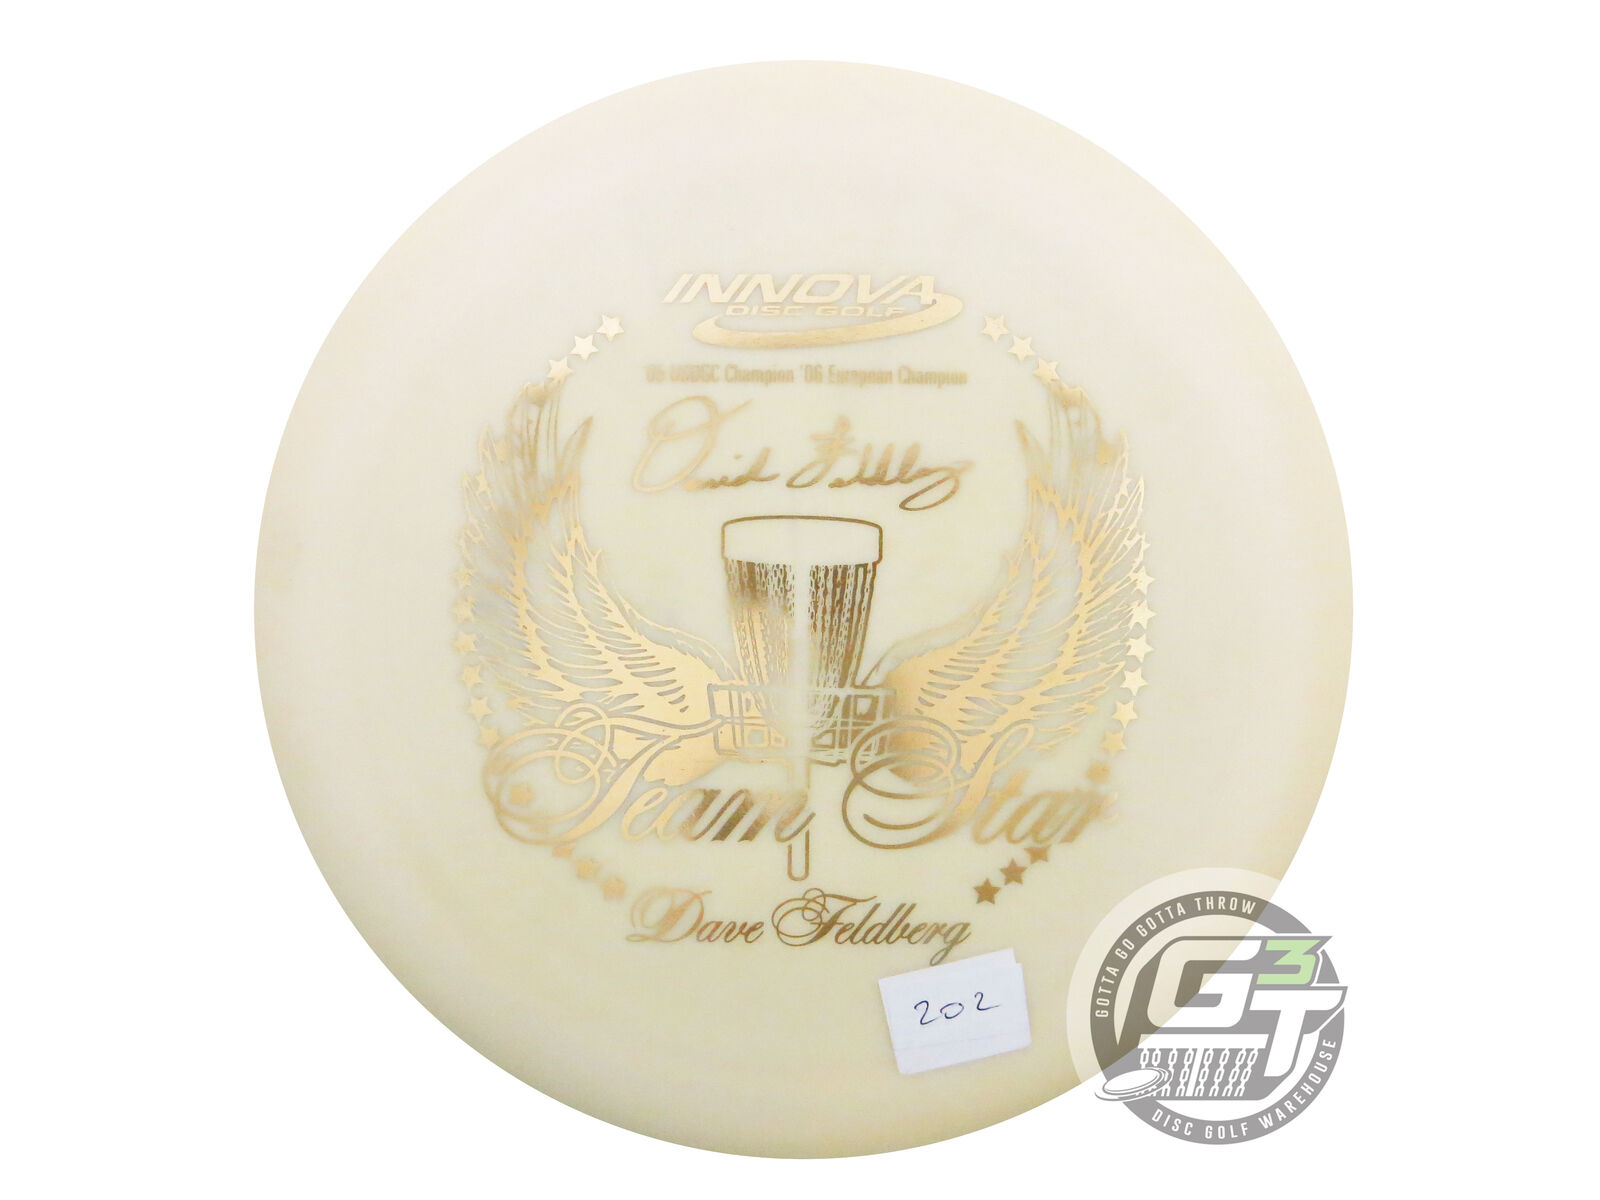 nouveau Innova Pro Destroyer 175g blanc 20 100 Team Star FELDBERG COLLECTION